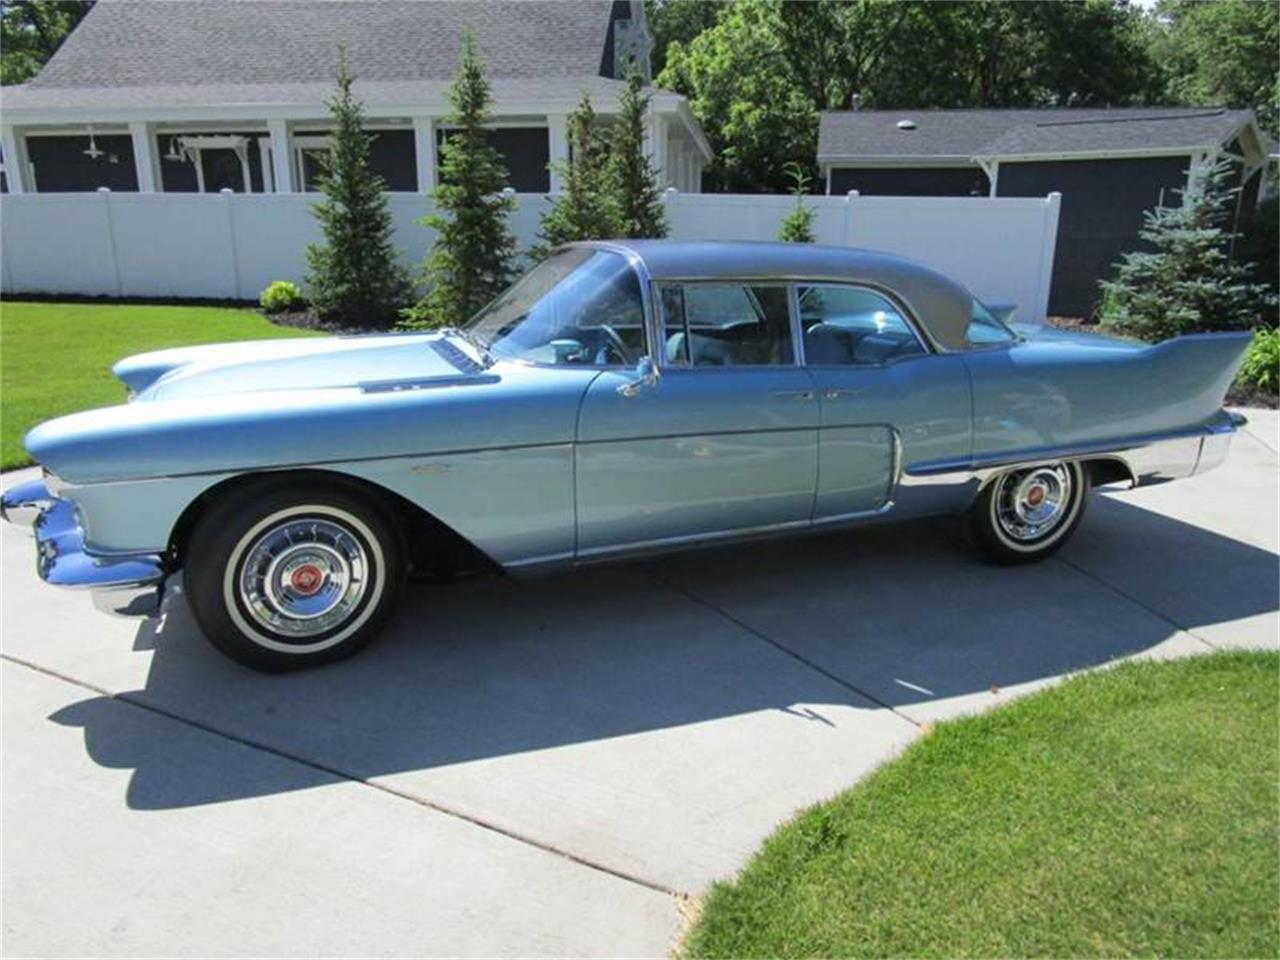 Large Picture of 1958 Cadillac Eldorado located in Stanley Wisconsin - $199,500.00 Offered by Cody's Classic Cars - QGHC